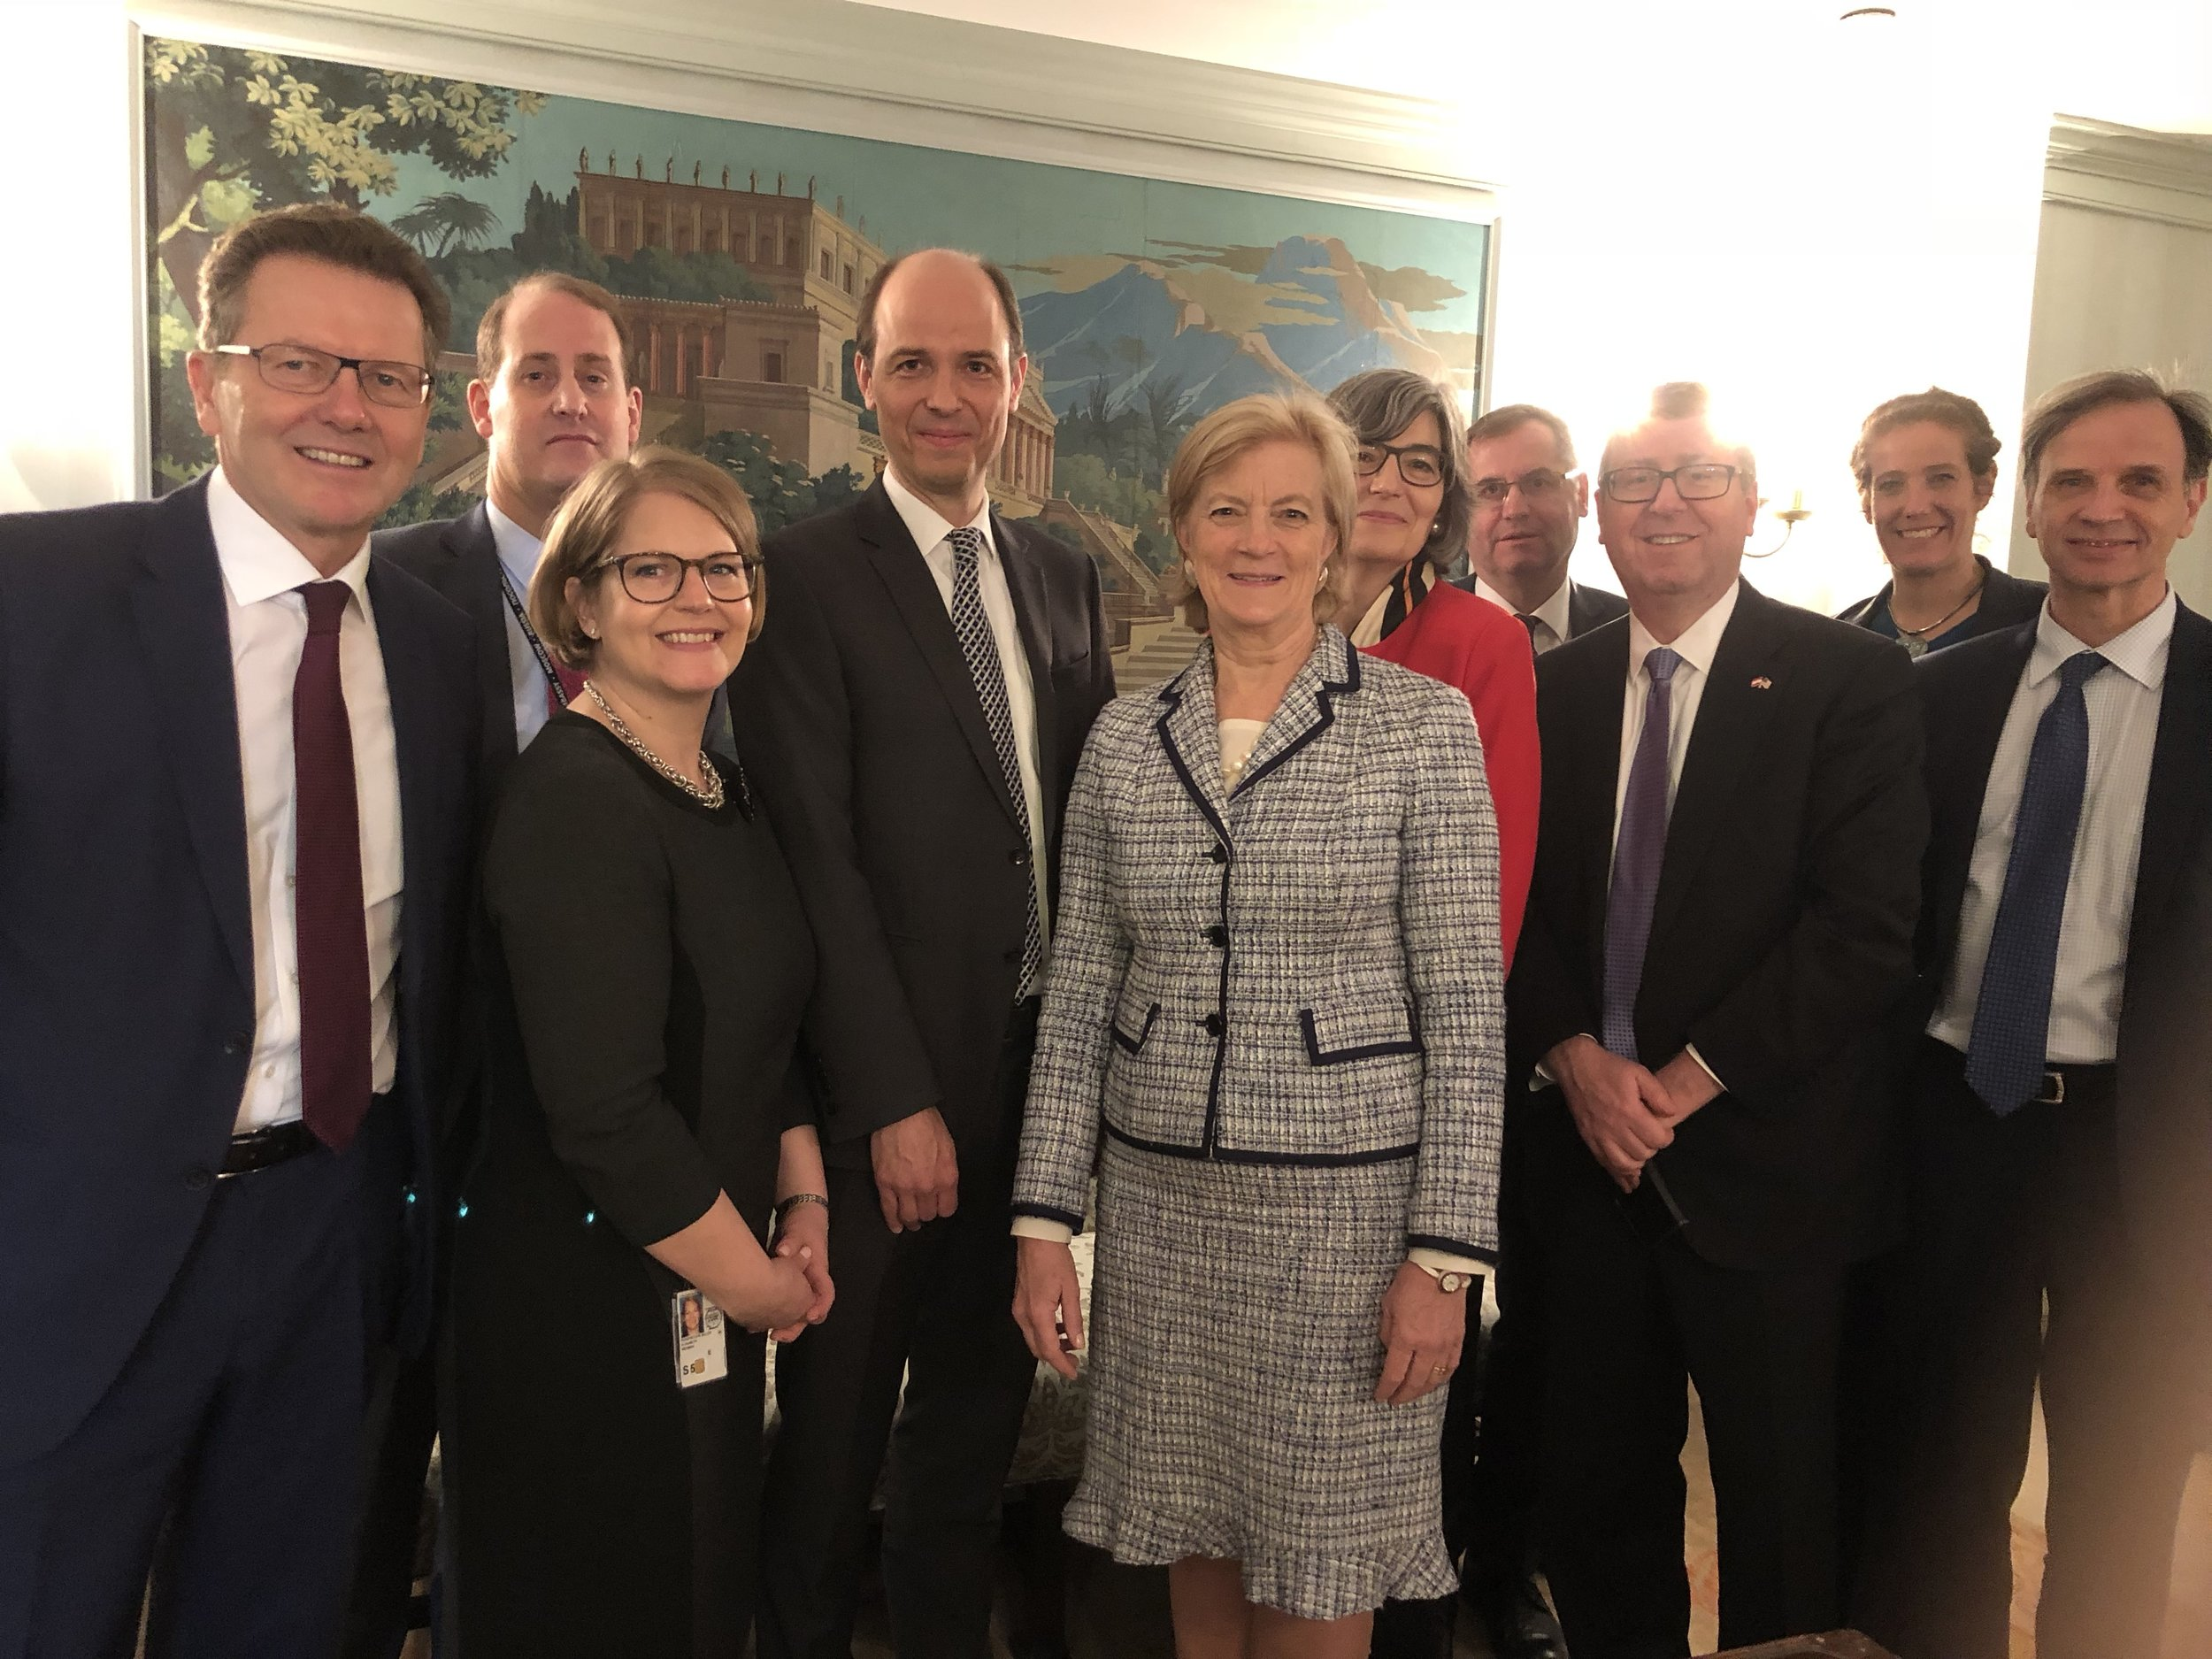 Austrian - U.S. political delegations at the U.S. Department of State.